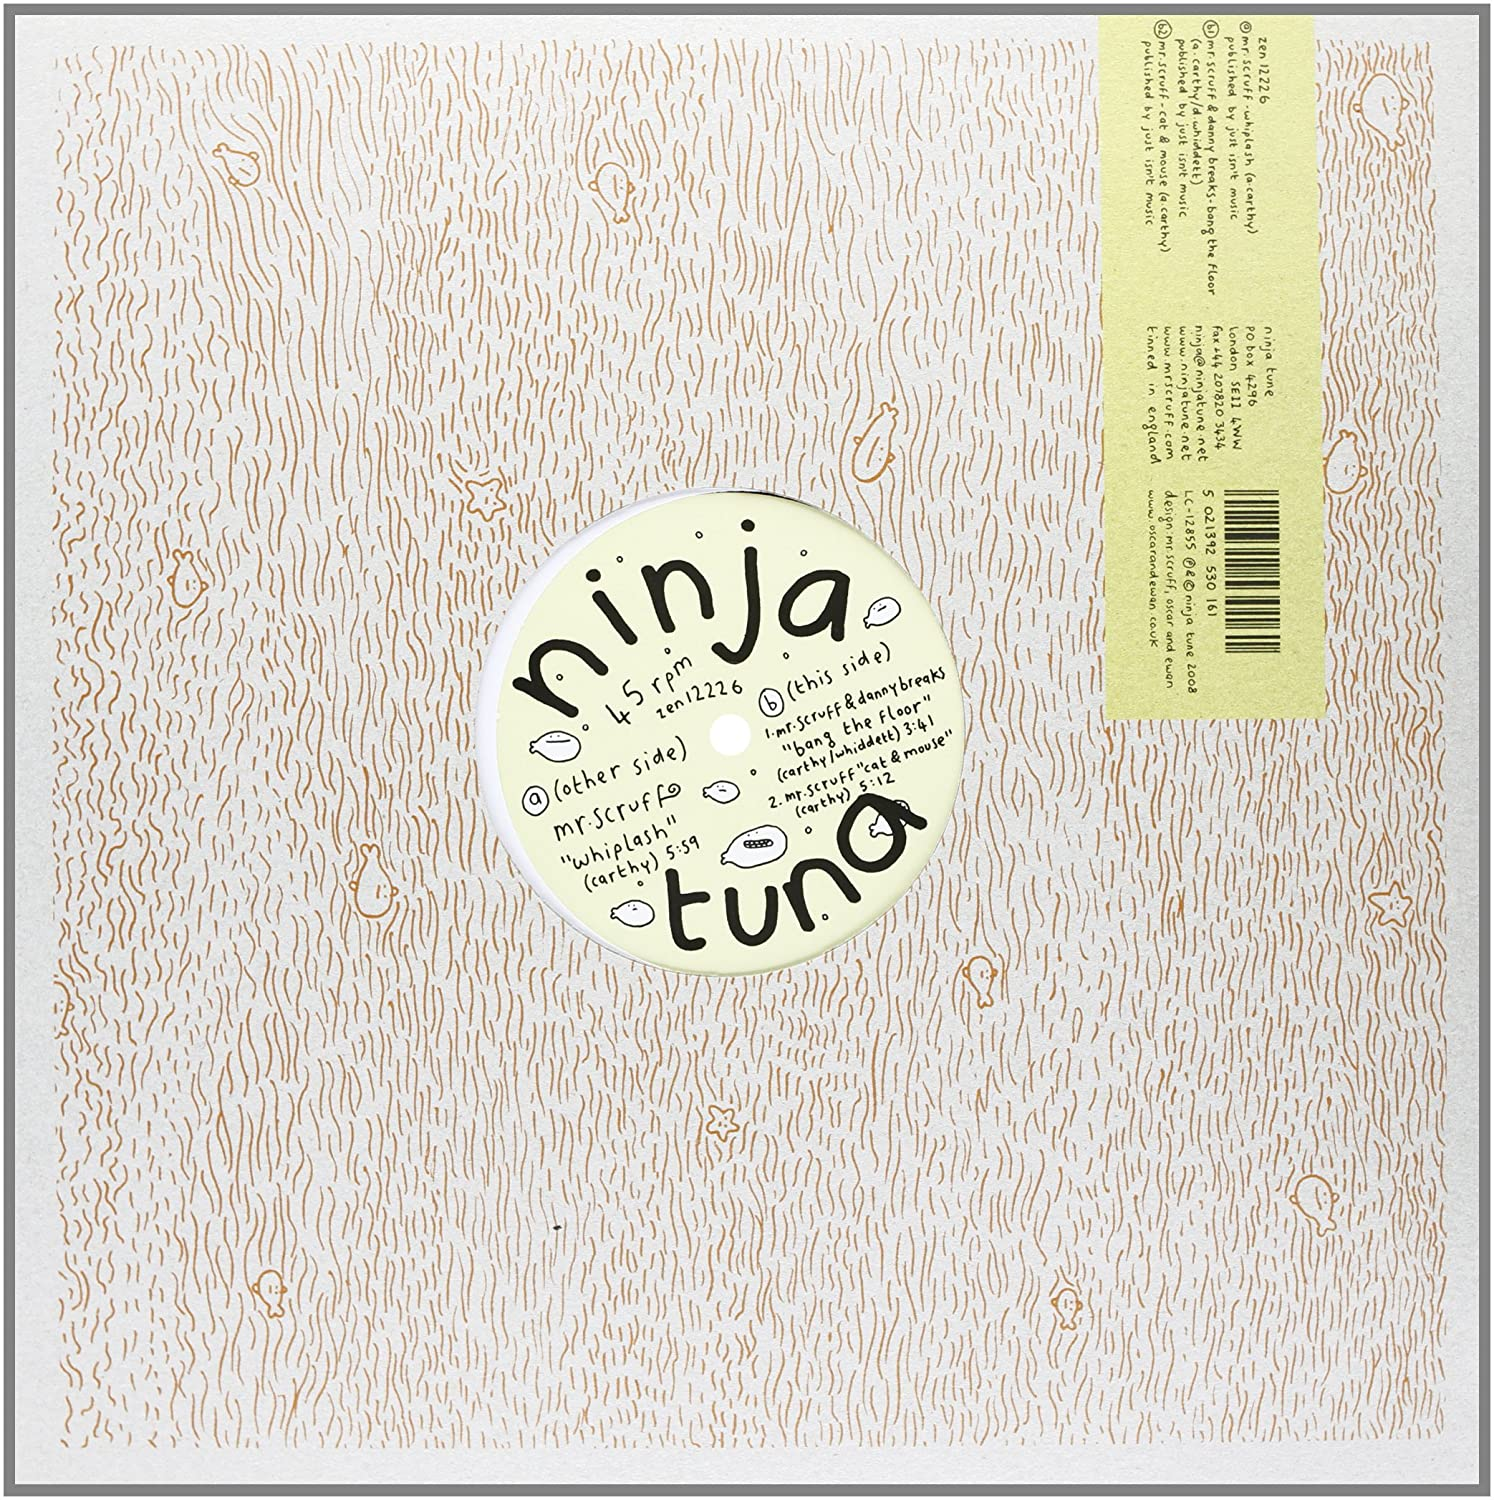 MR SCRUFF - Whiplash/Bang the Floor [Vinyl] - Amazon.com Music